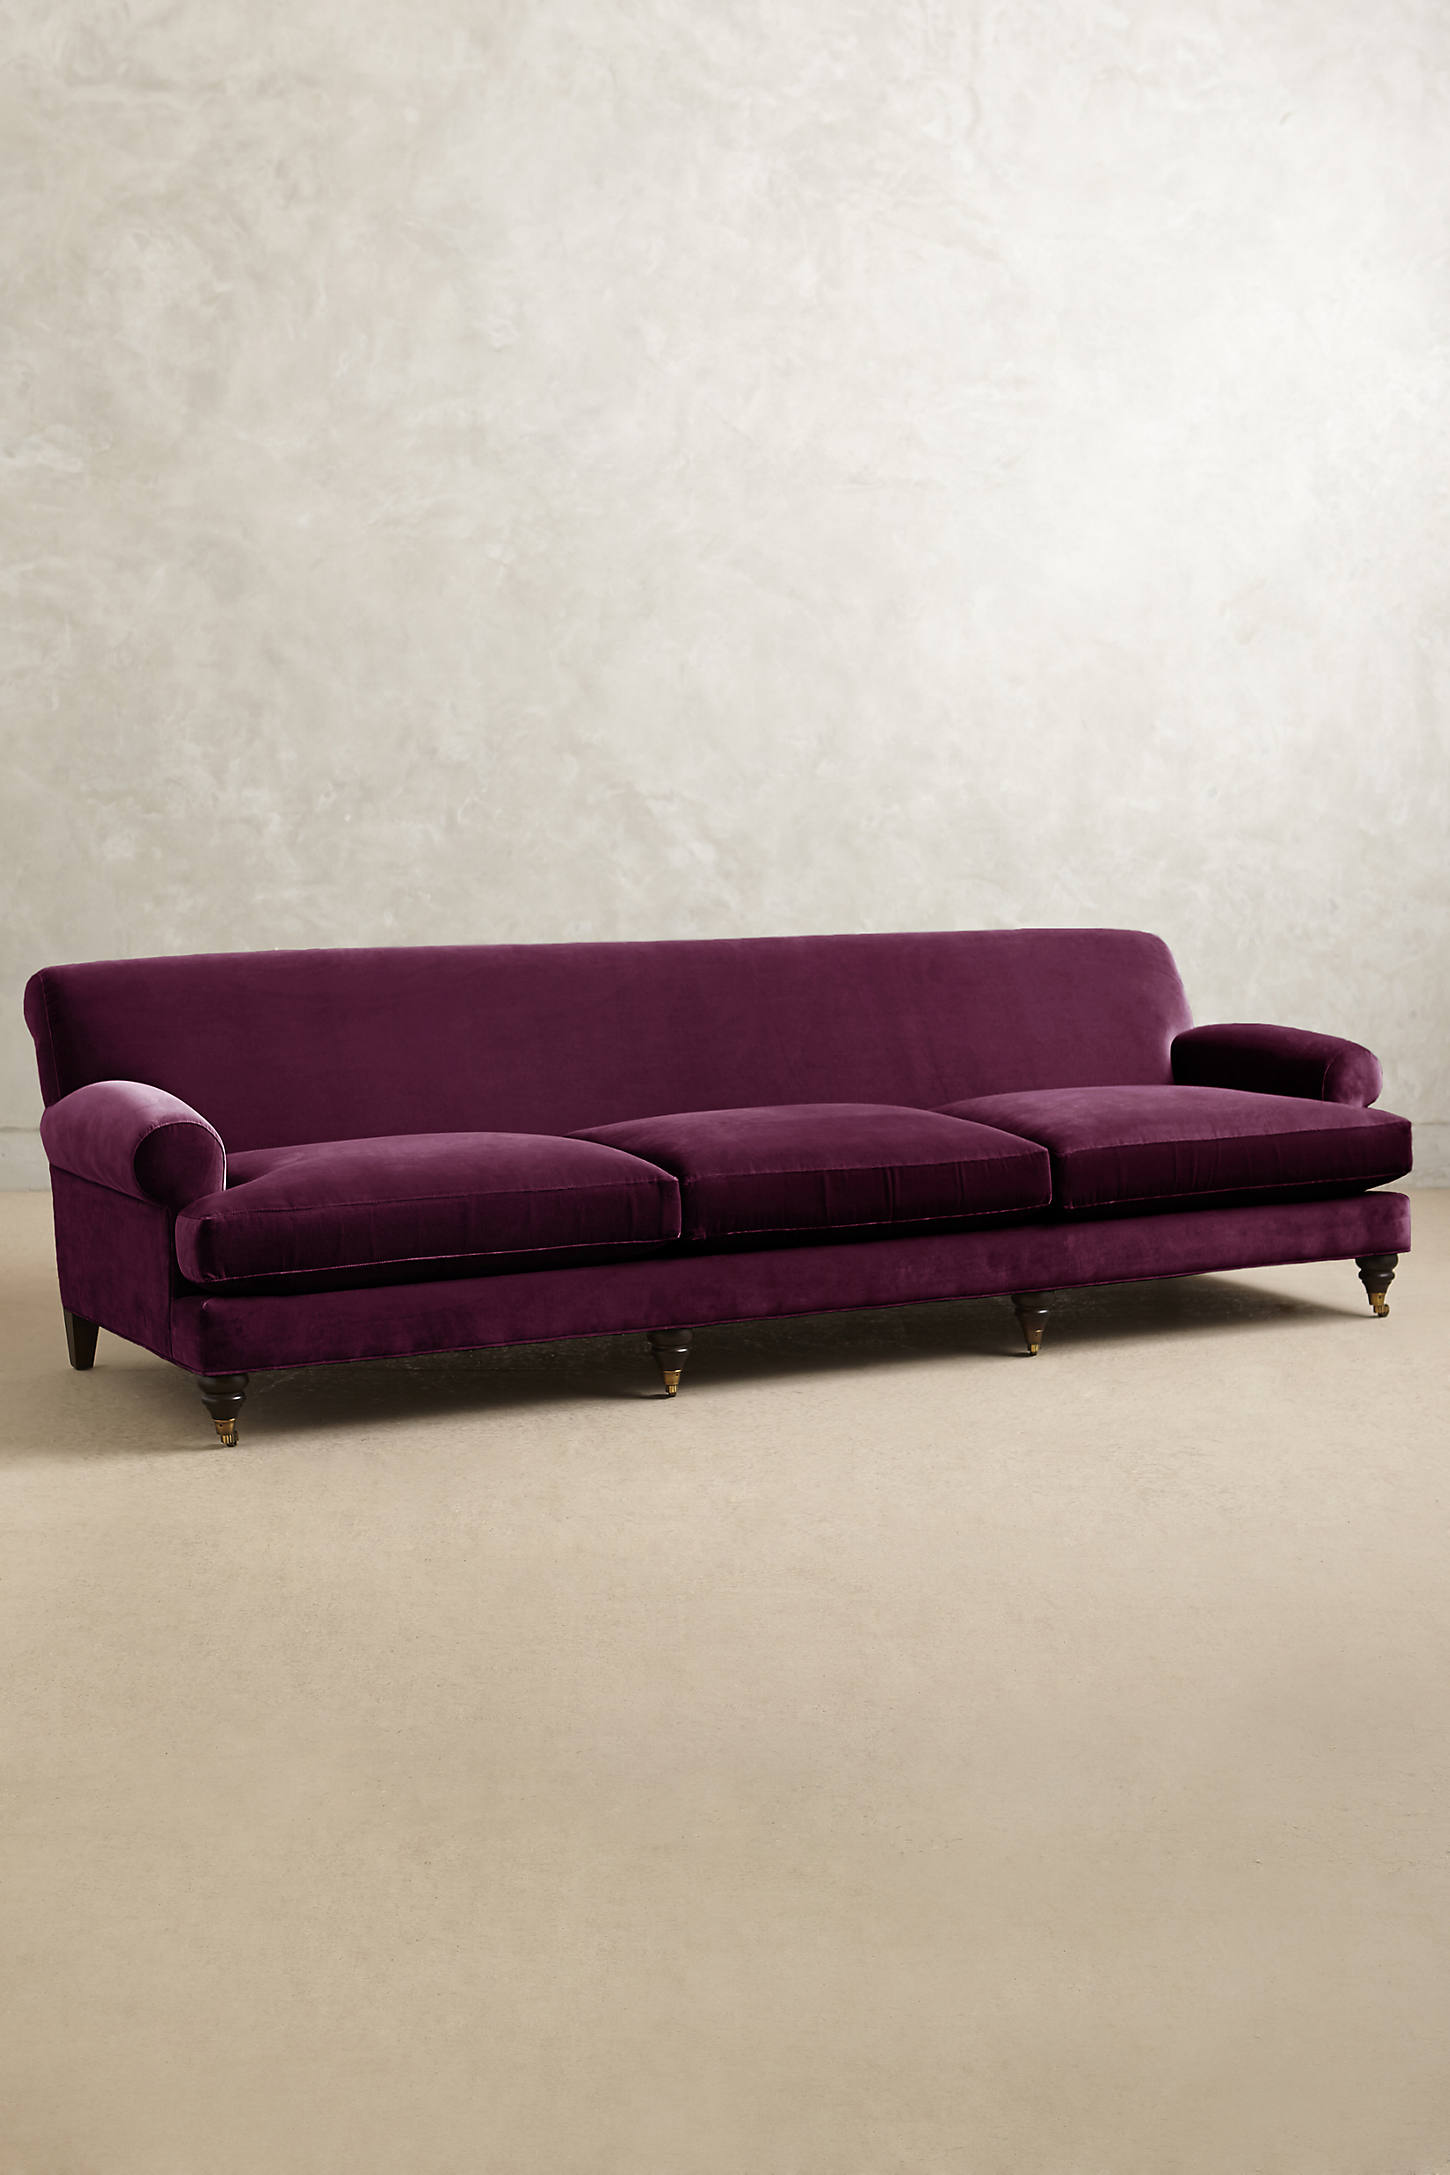 Velvet Willoughby Grand Sofa, Hickory